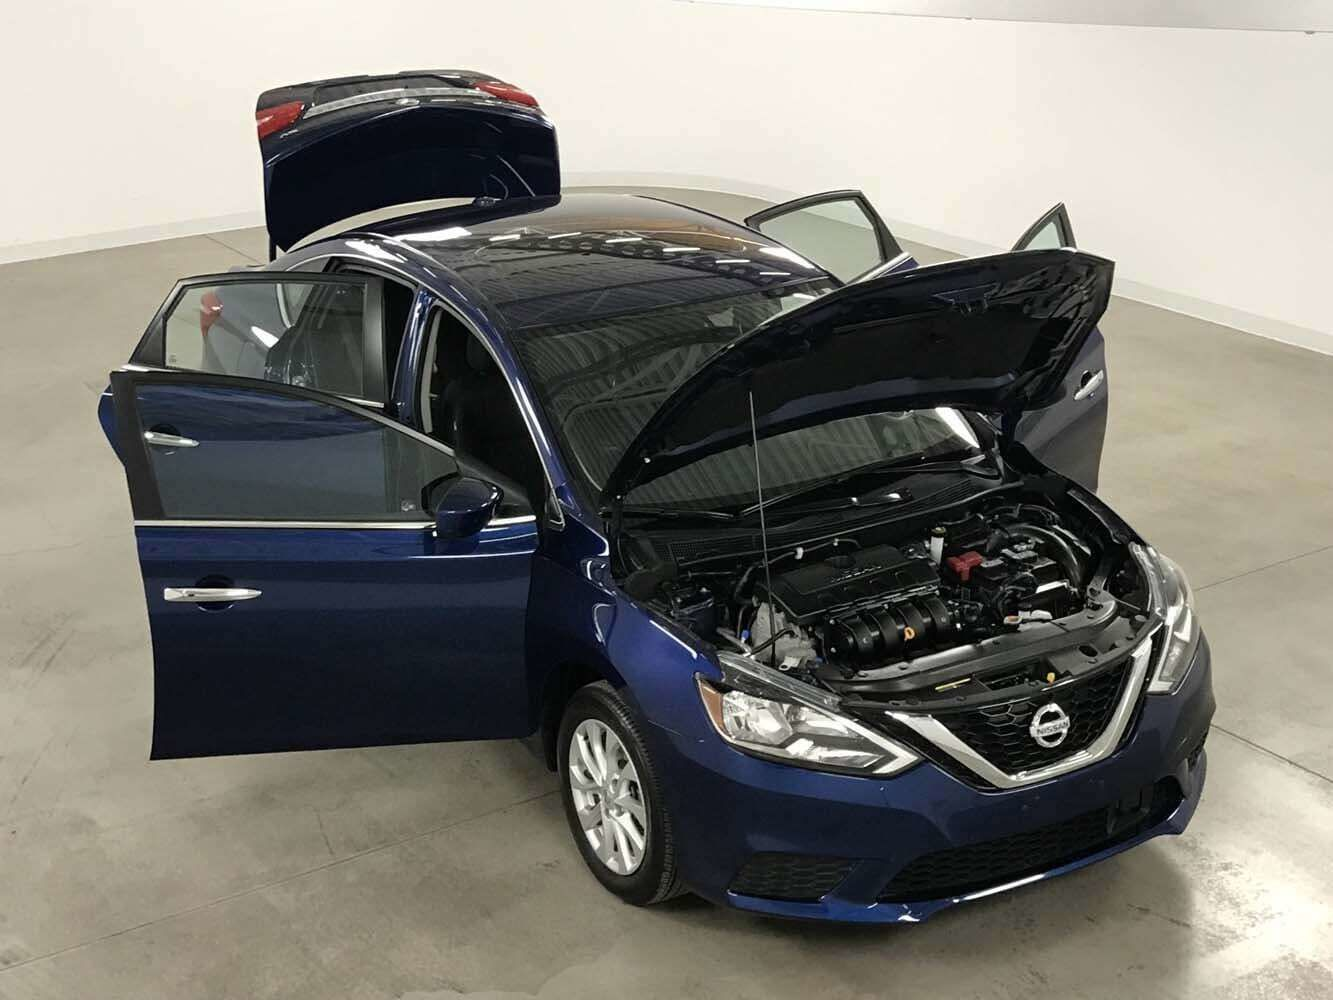 Used 2019 Nissan Sentra Toit Mags 10 928 Km For Sale 17496 0 Carrefour 40 640 Volkswagen 9601